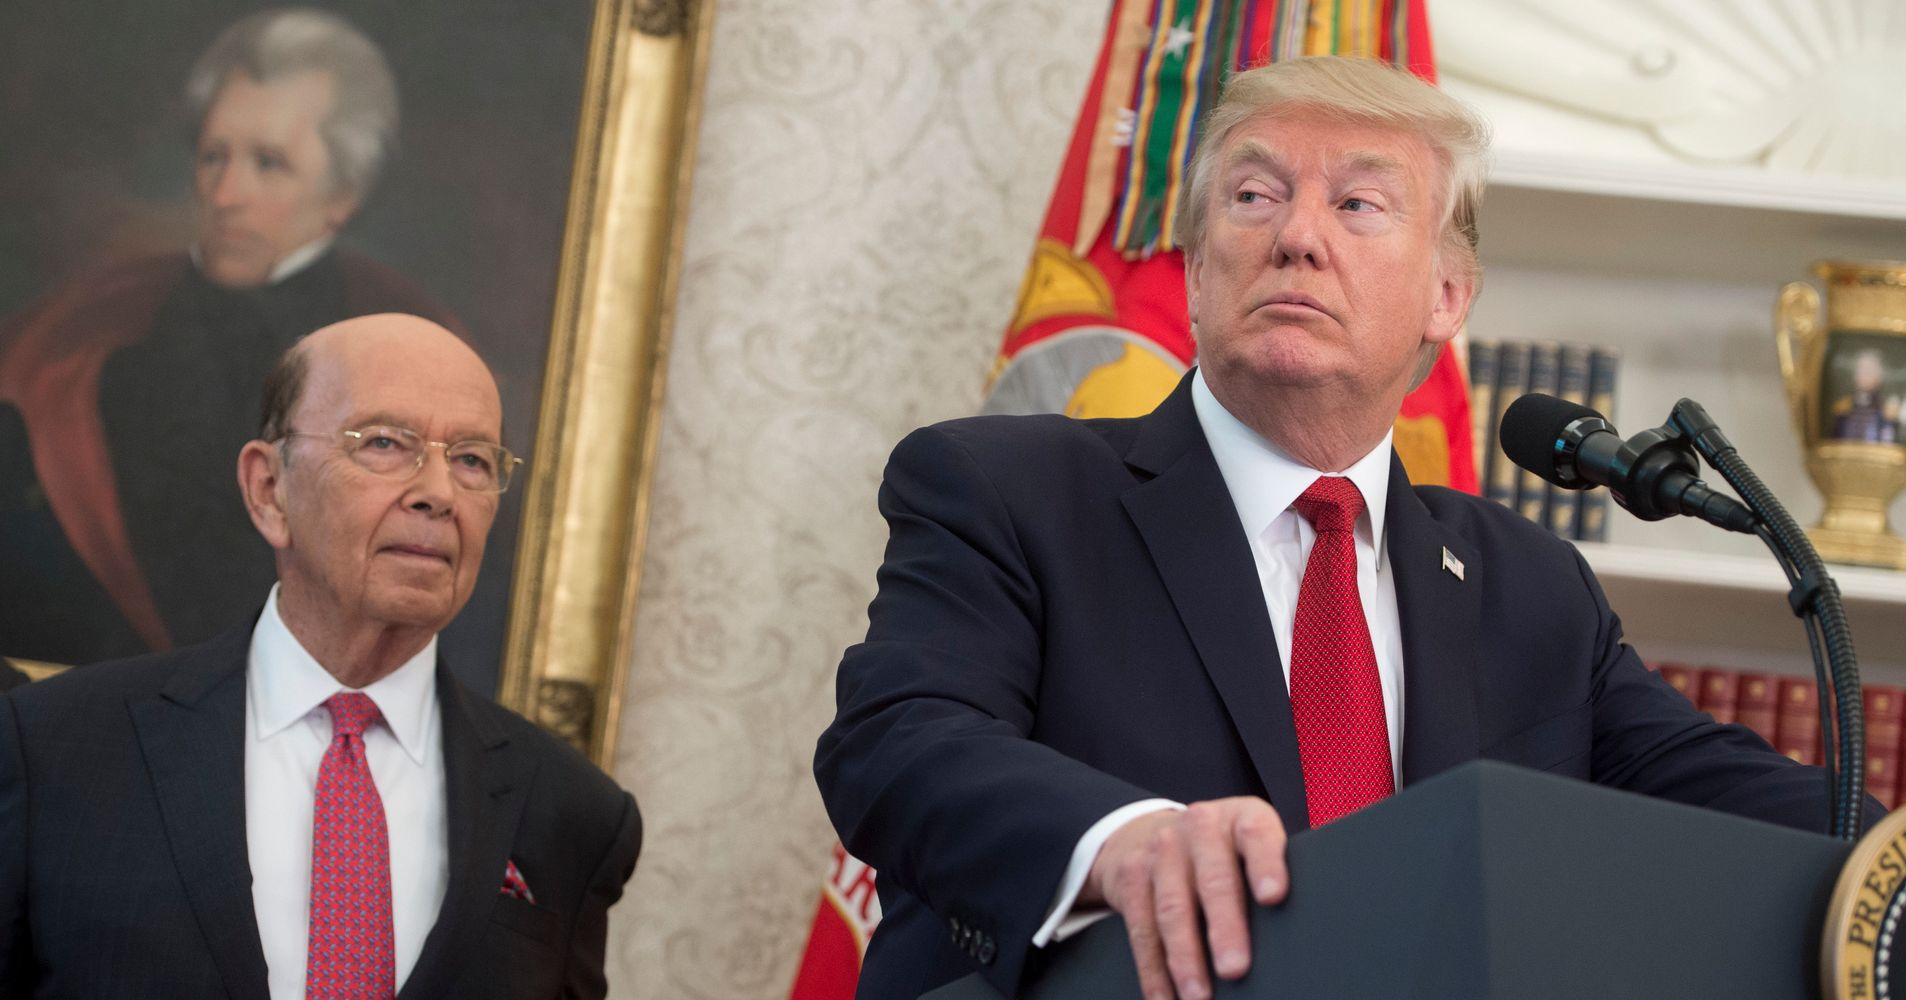 Trump Administration's Justification For Adding A Census Citizenship Questio...